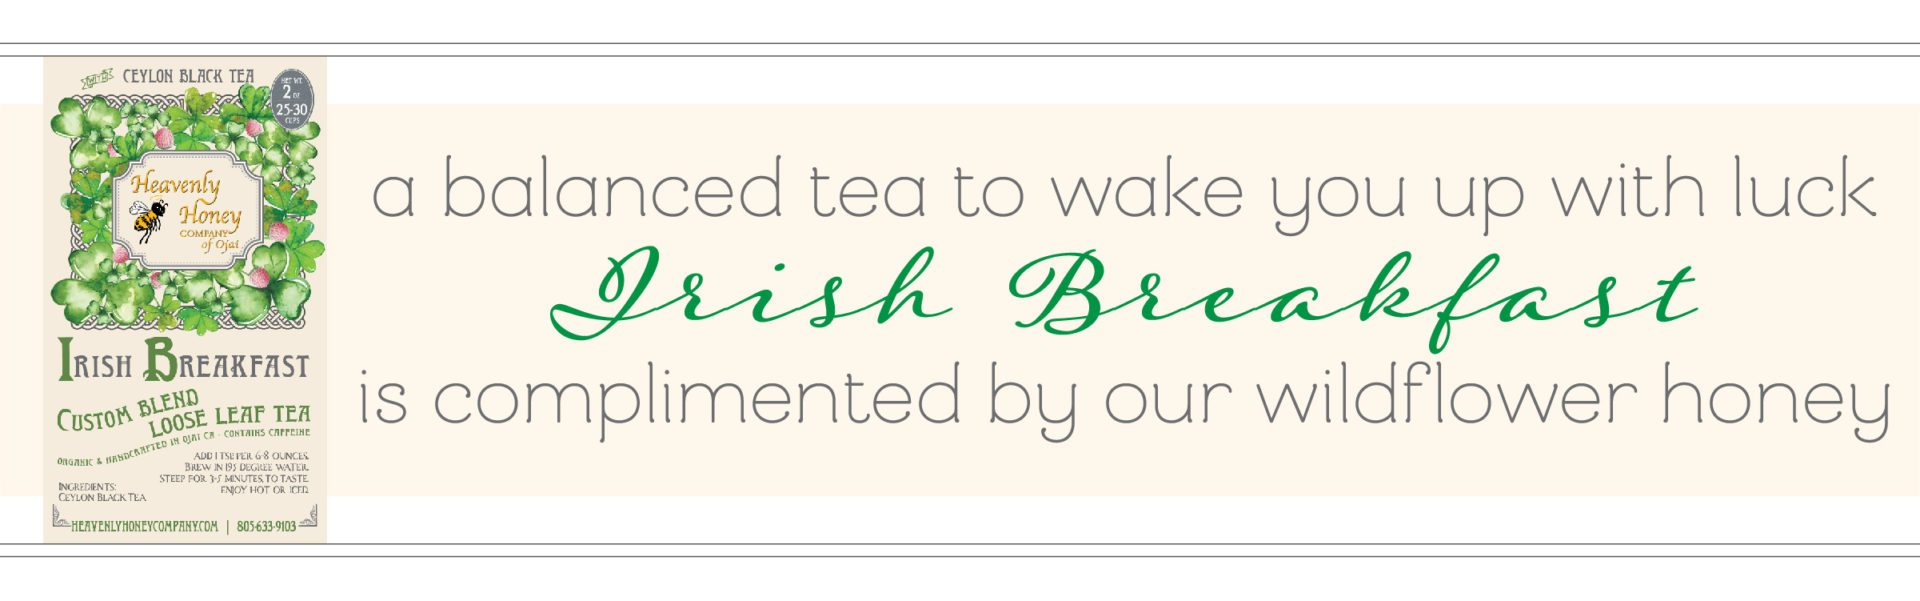 Irish Breakfast Custom Blend Tea